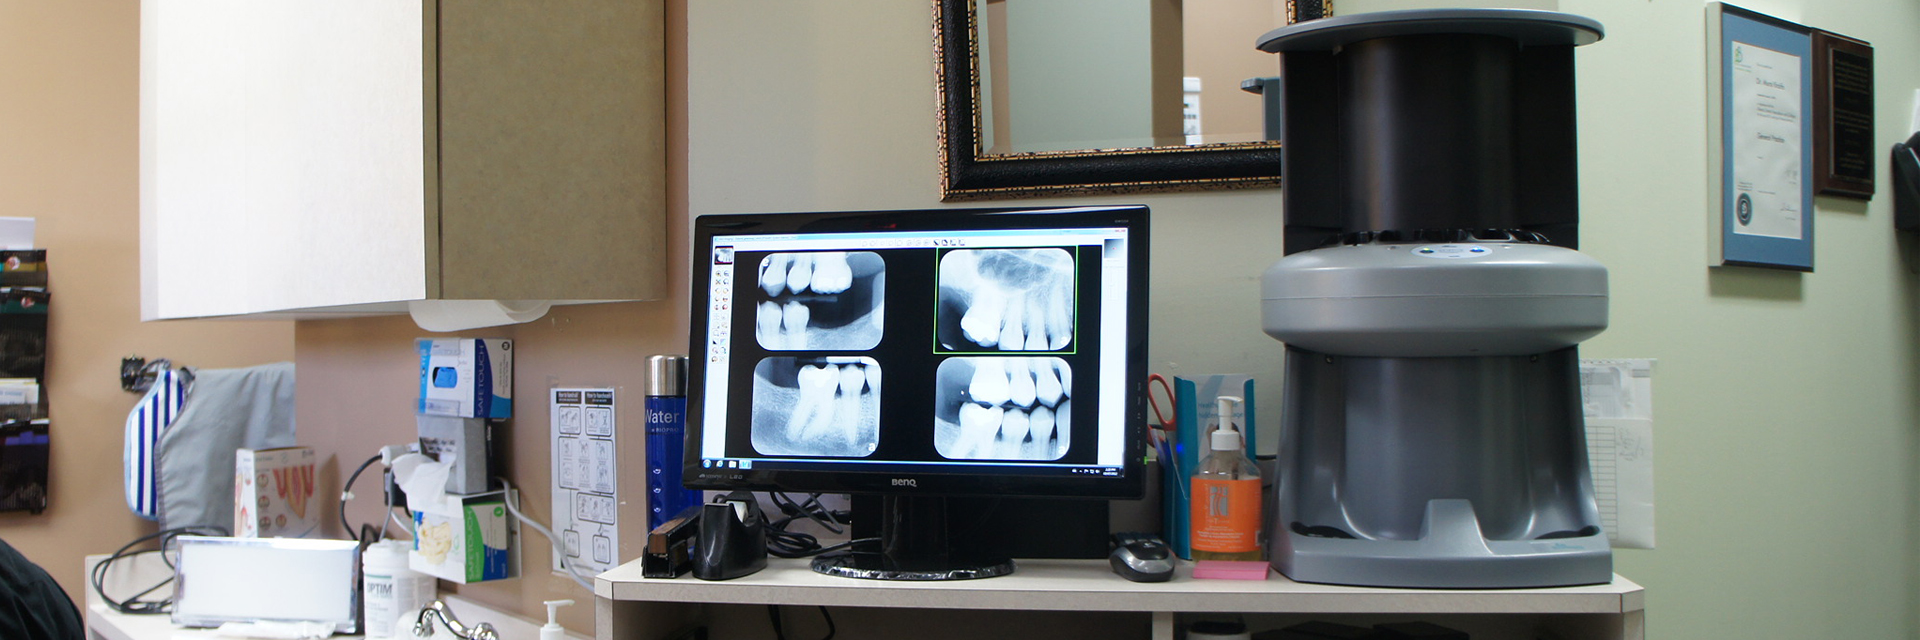 Dental Services Provided: